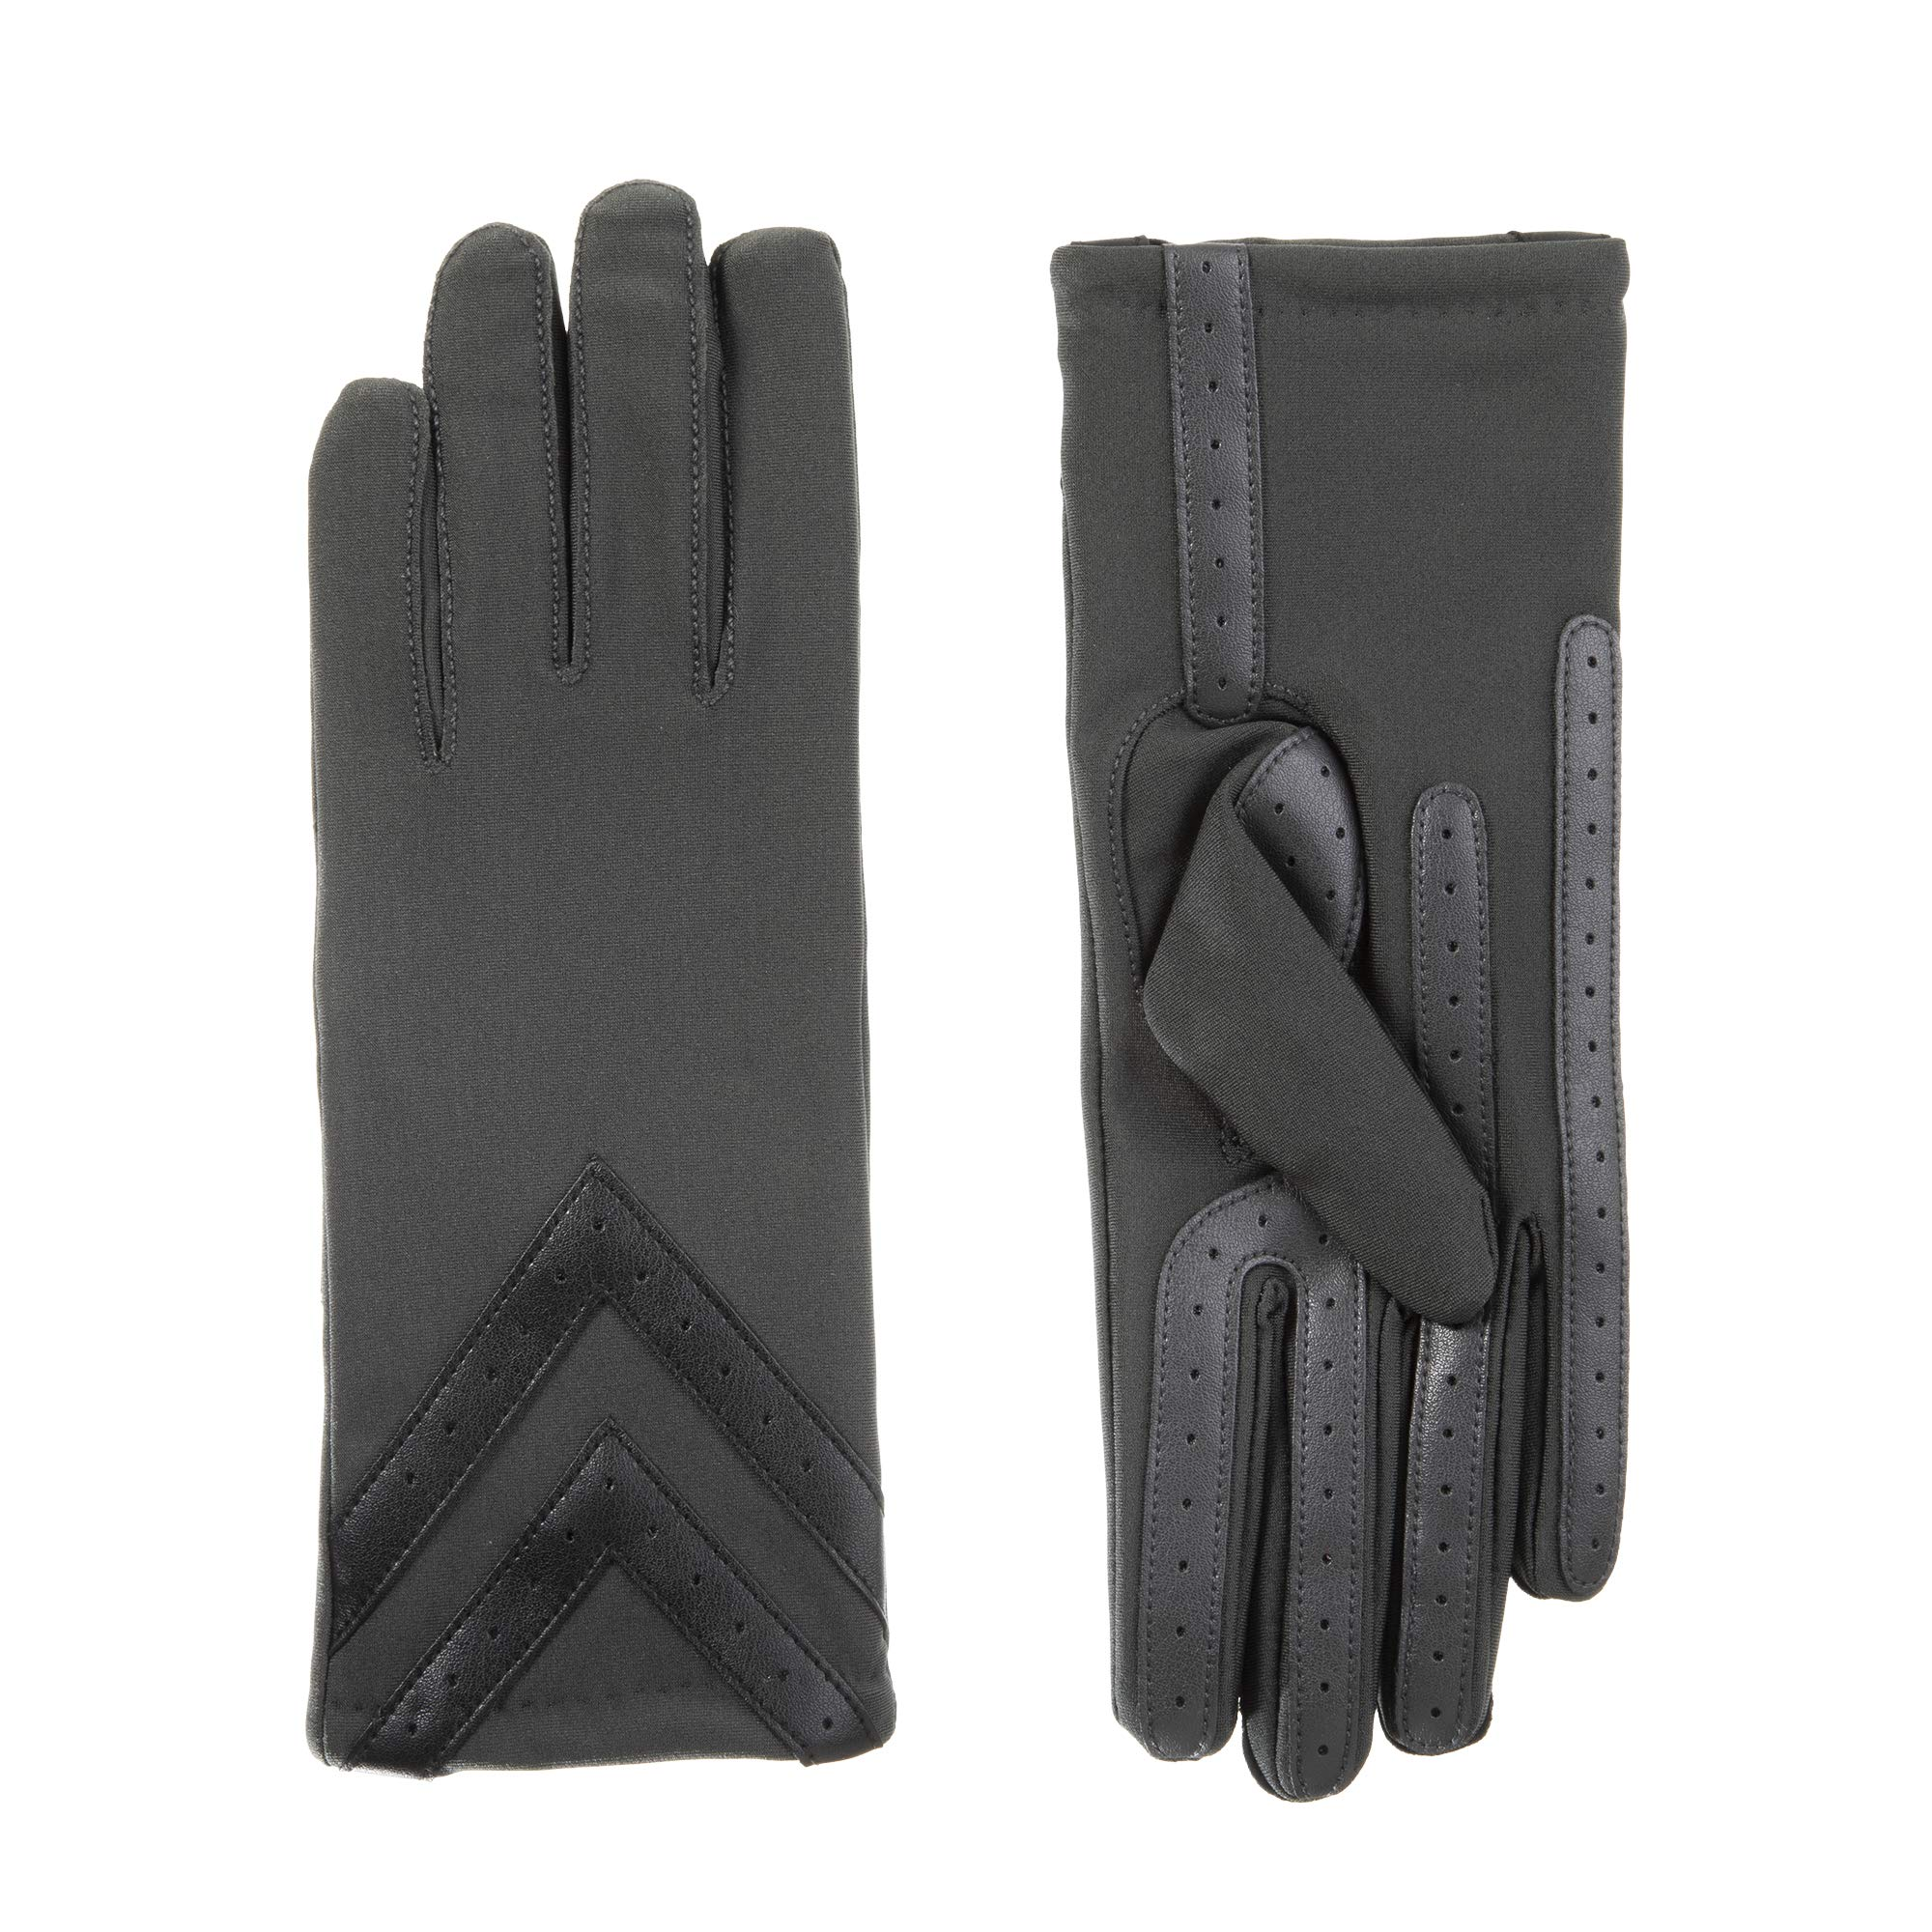 Womens Spandex Touchscreen Cold Weather Gloves with Warm Fleece Lining and Chevron Details